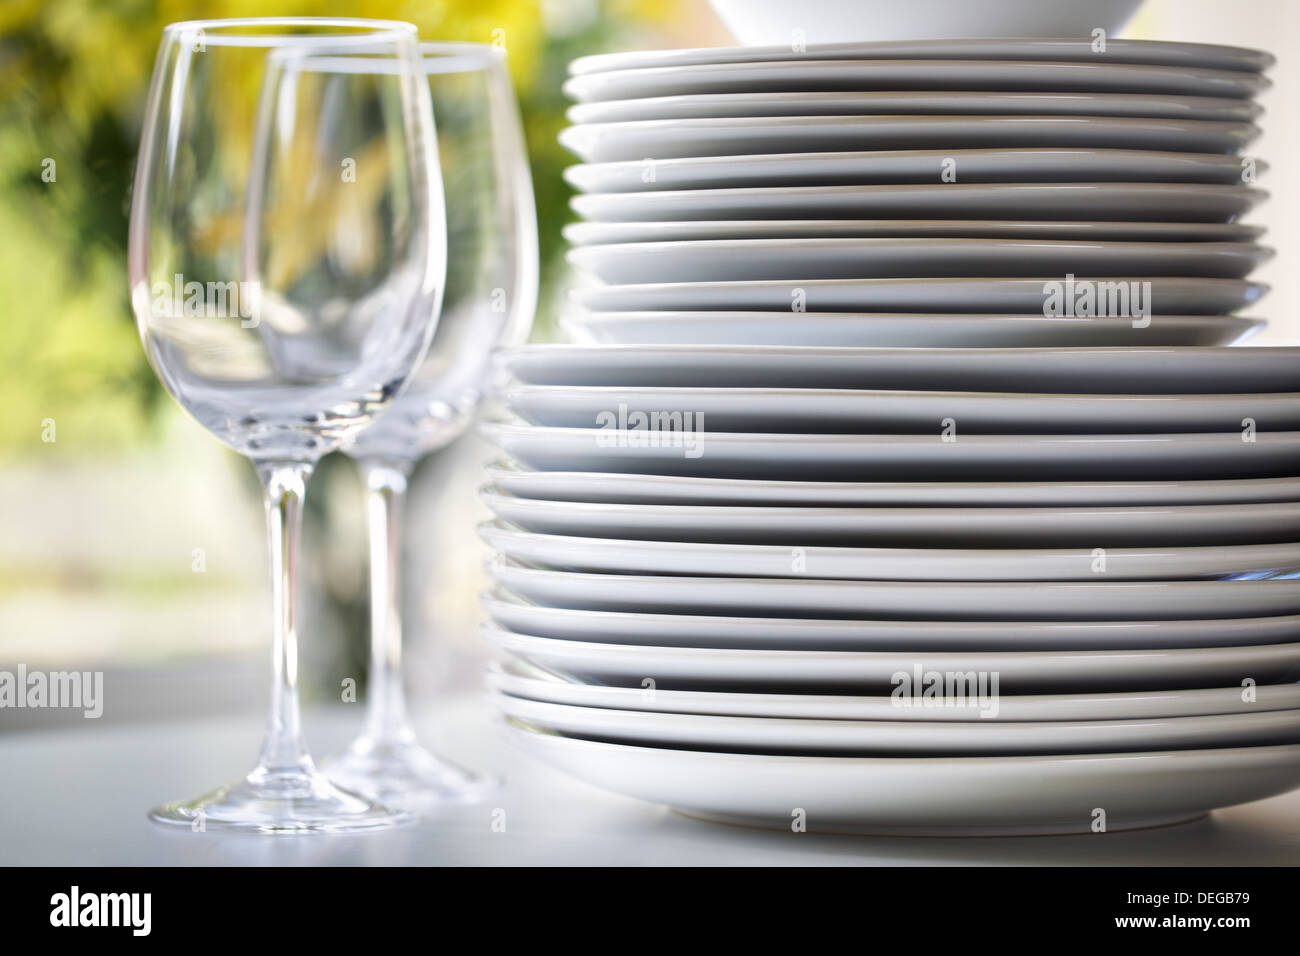 White plates and wine glasses - Stock Image